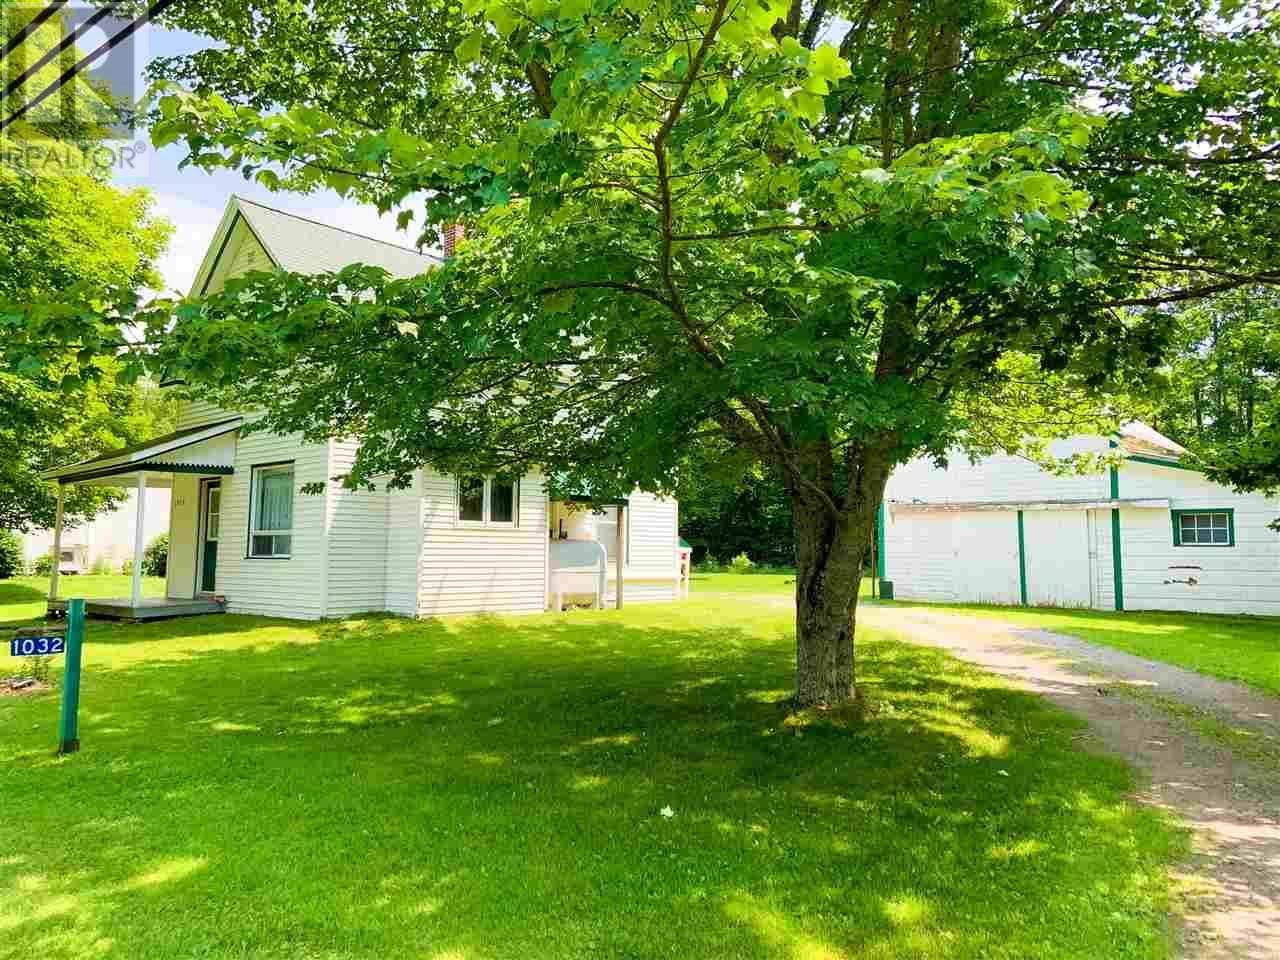 House for sale at 1032 Maple St Waterville Nova Scotia - MLS: 201918388